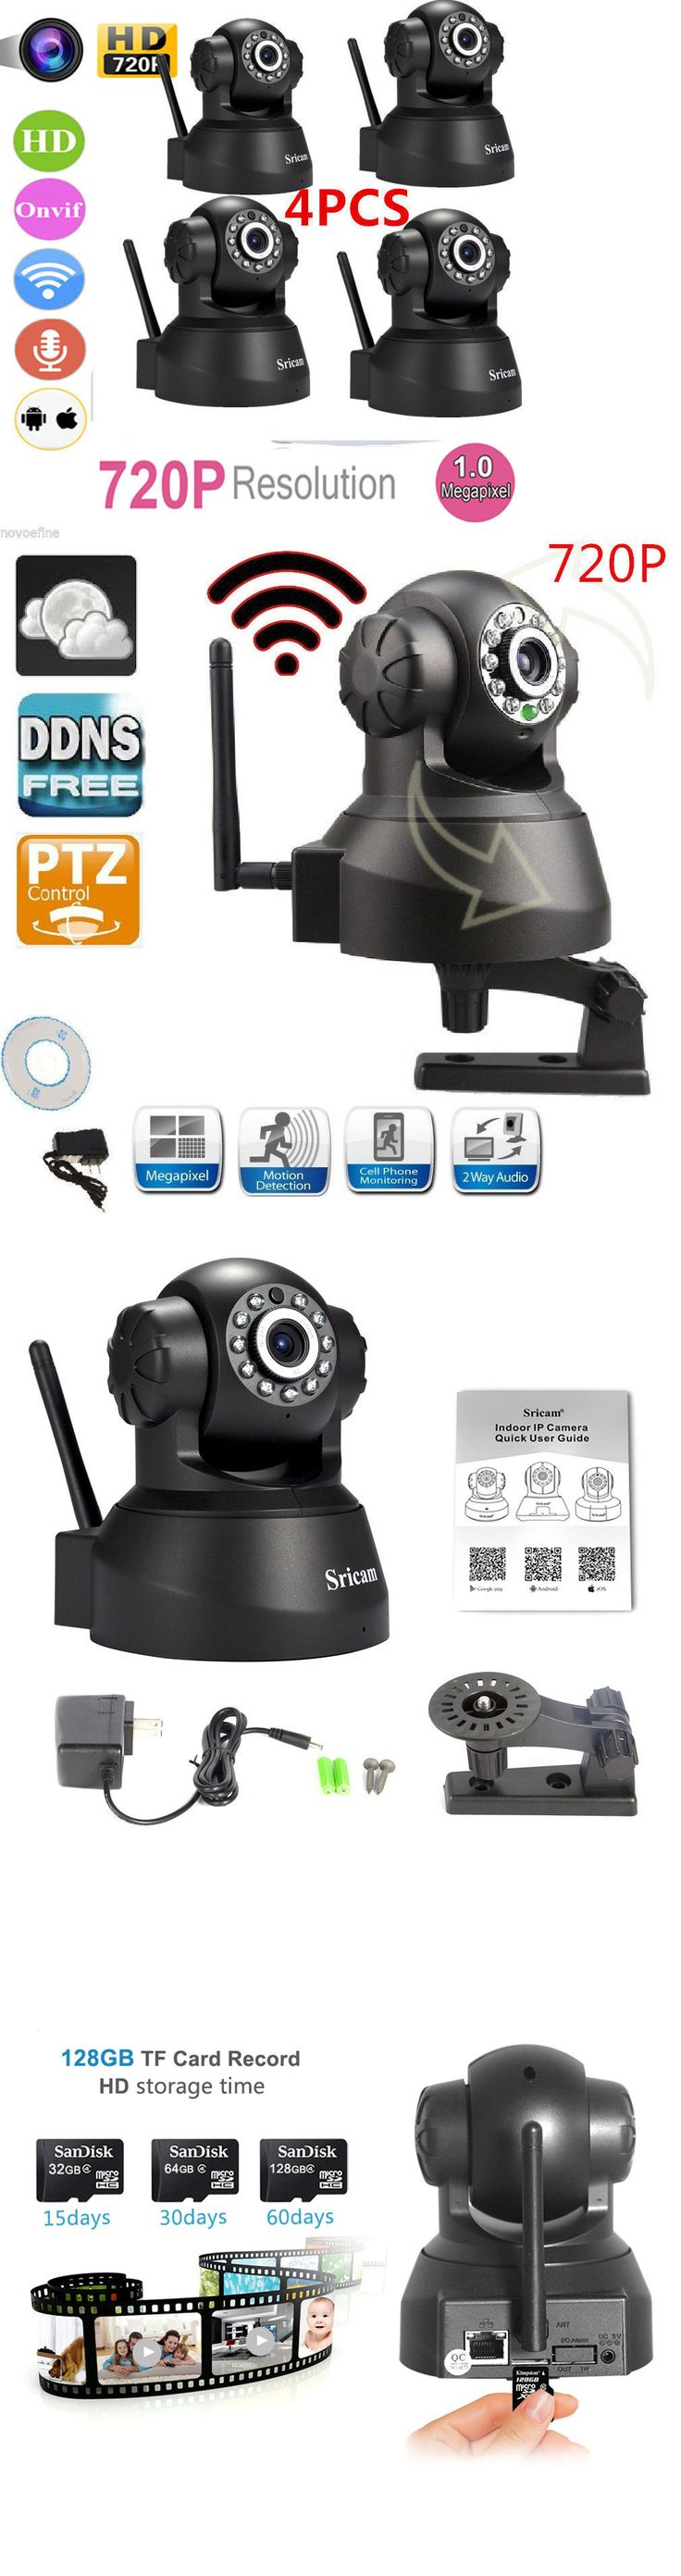 Security Cameras: 4 Oem Set Of Sricam 720P Wireless Ip Camera Wifi Security Night Vision Cam -> BUY IT NOW ONLY: $92.95 on eBay!